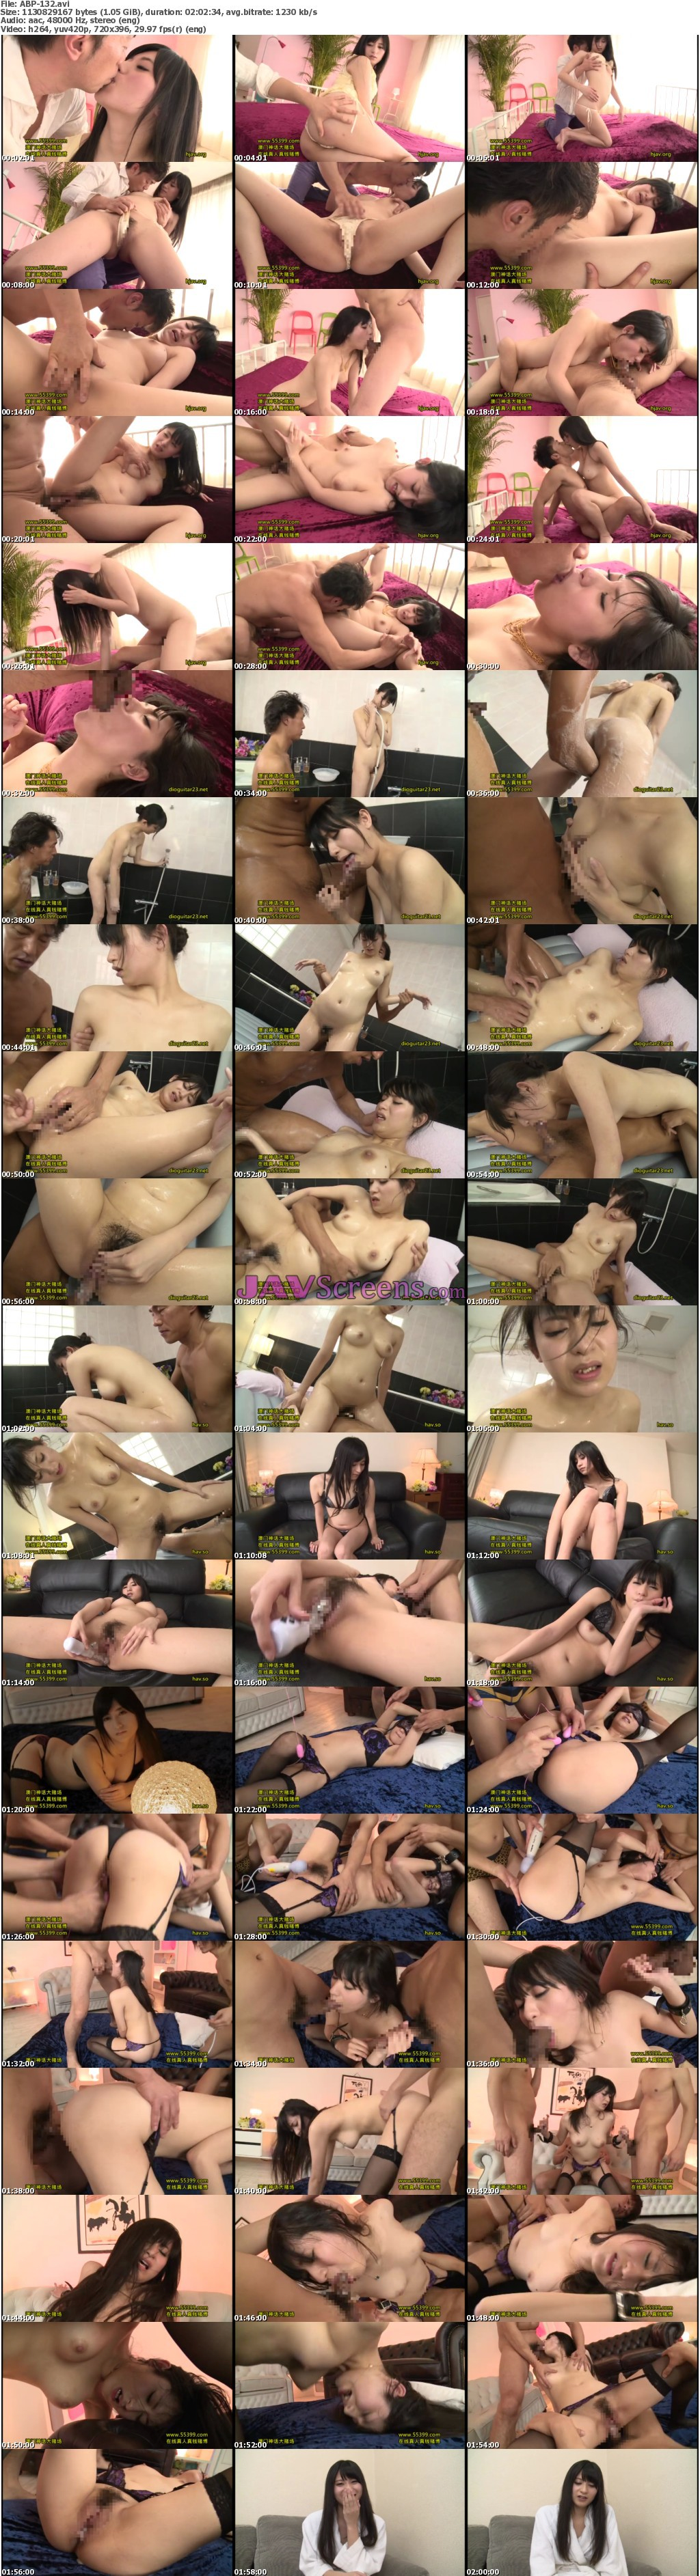 ABP-132.jpg - JAV Screenshot